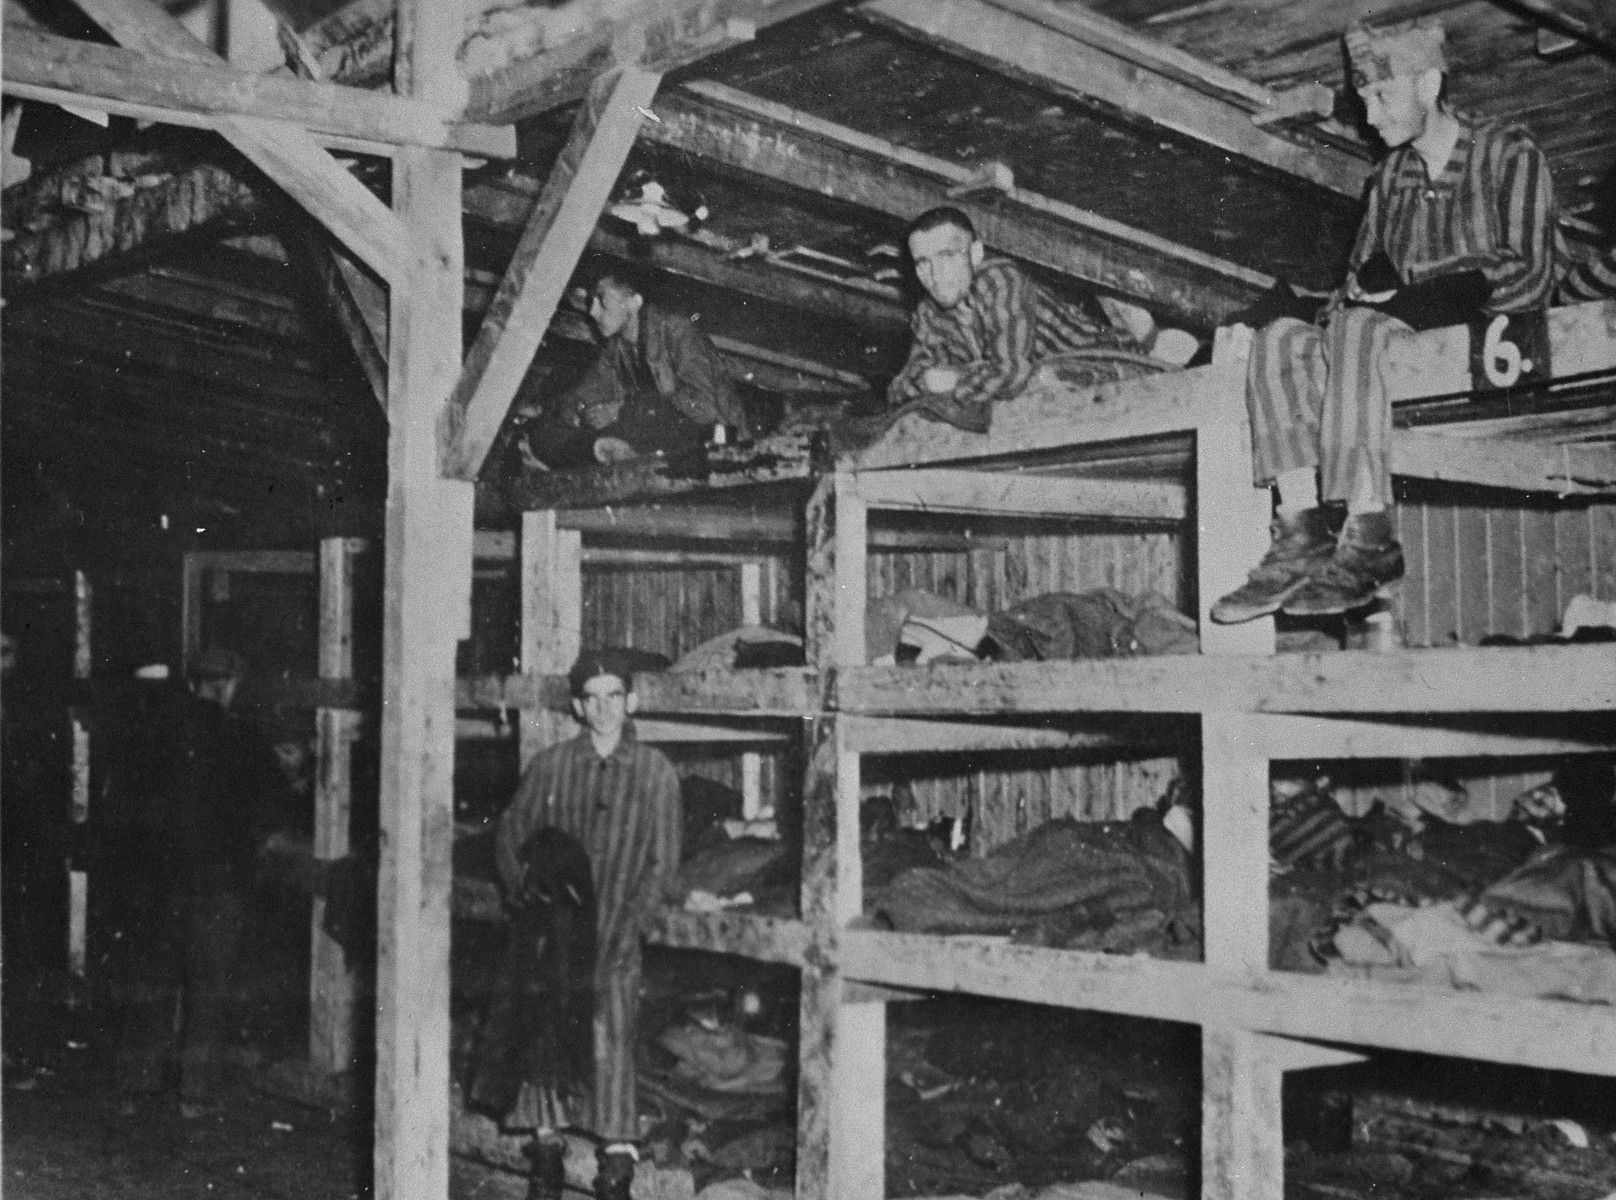 Survivors sit in multi-tiered bunks in a barracks in the newly liberated Buchenwald concentration camp.